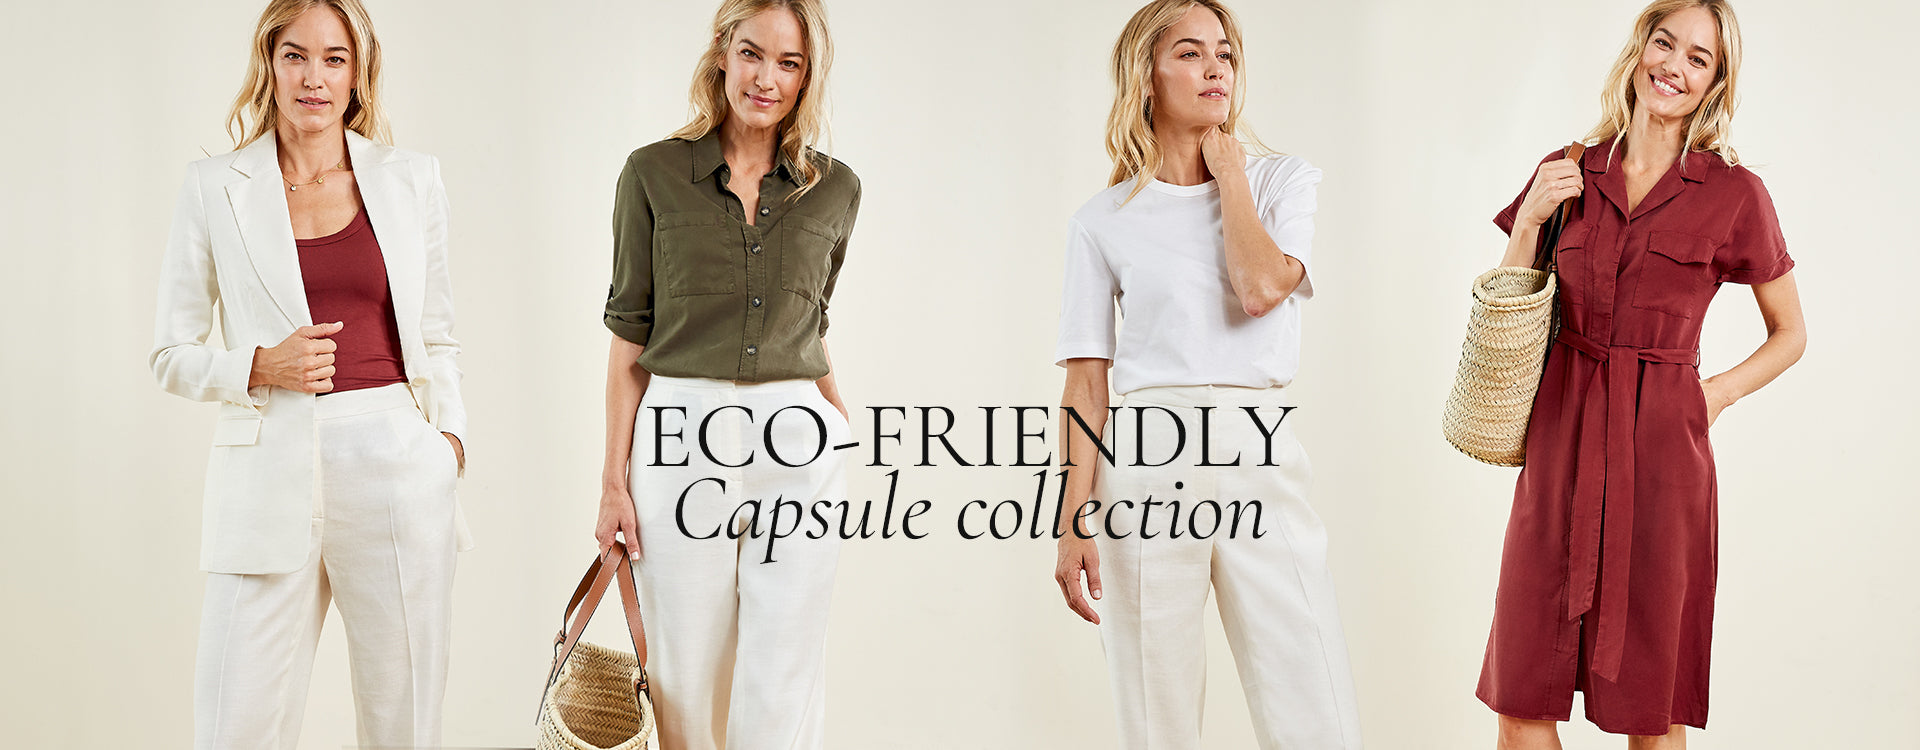 Eco-friendly Capsule Collection